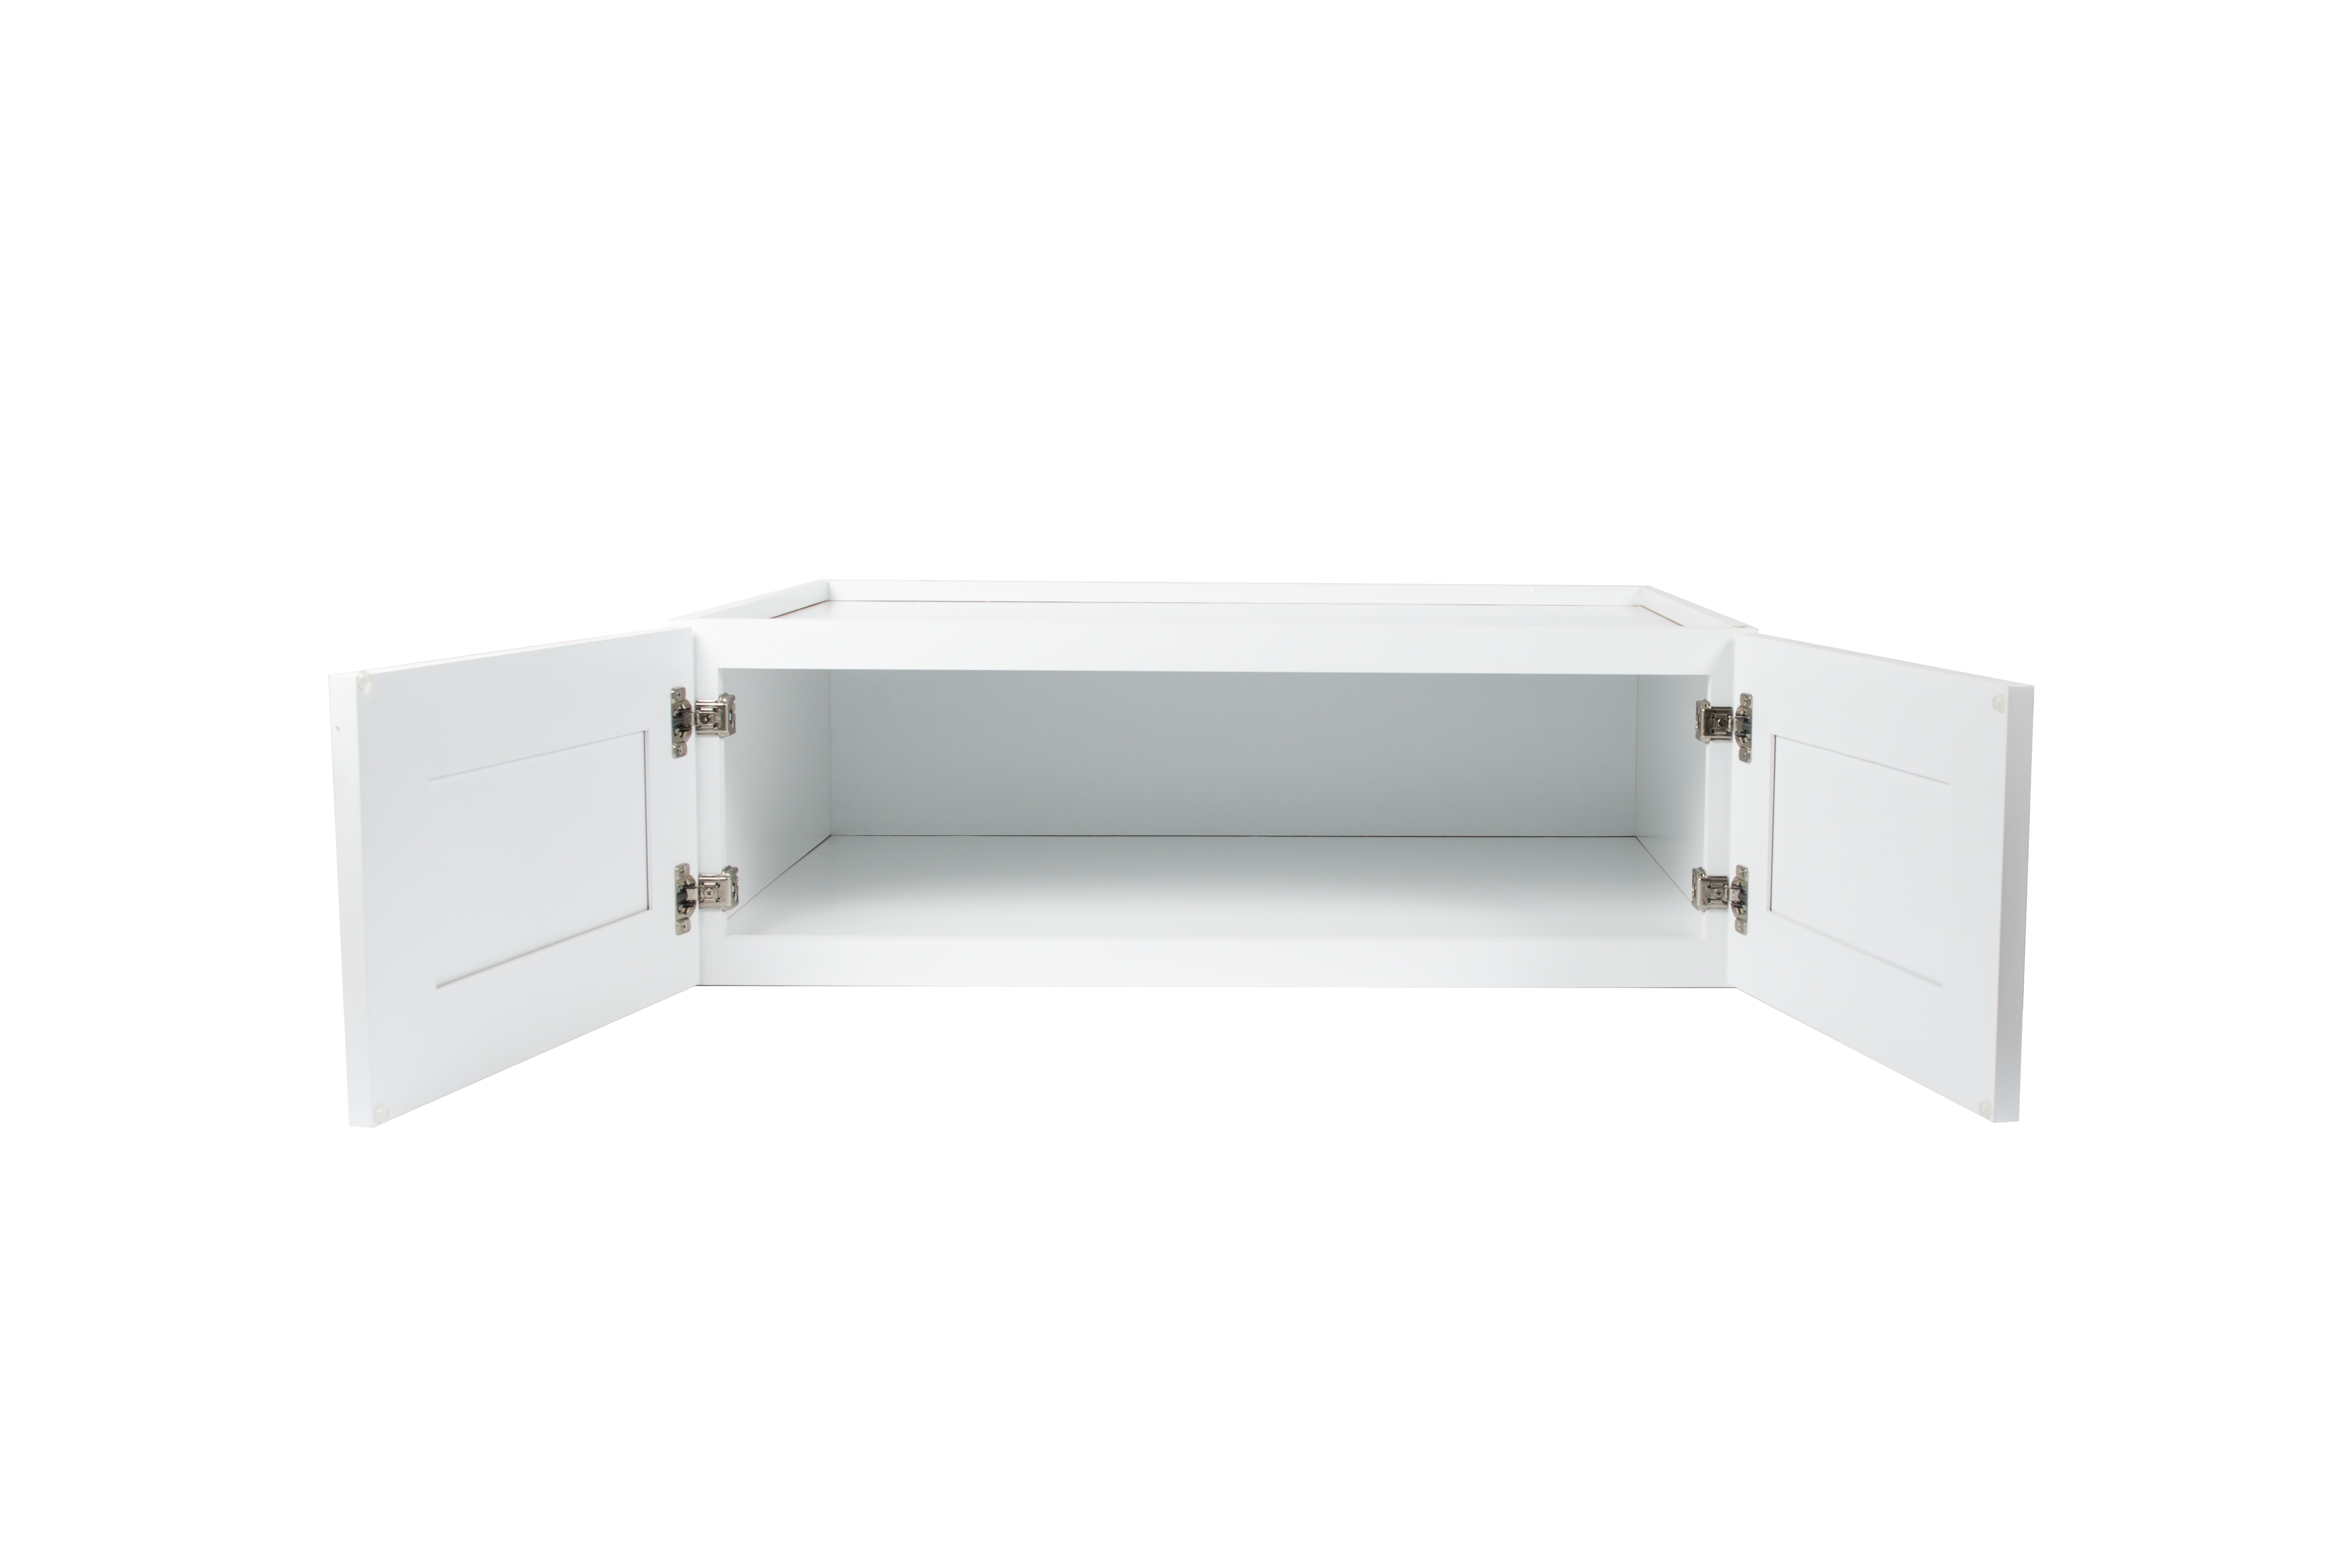 Ready to Assemble 36x15x24 in. Shaker High Double Door Wall Cabinet in White